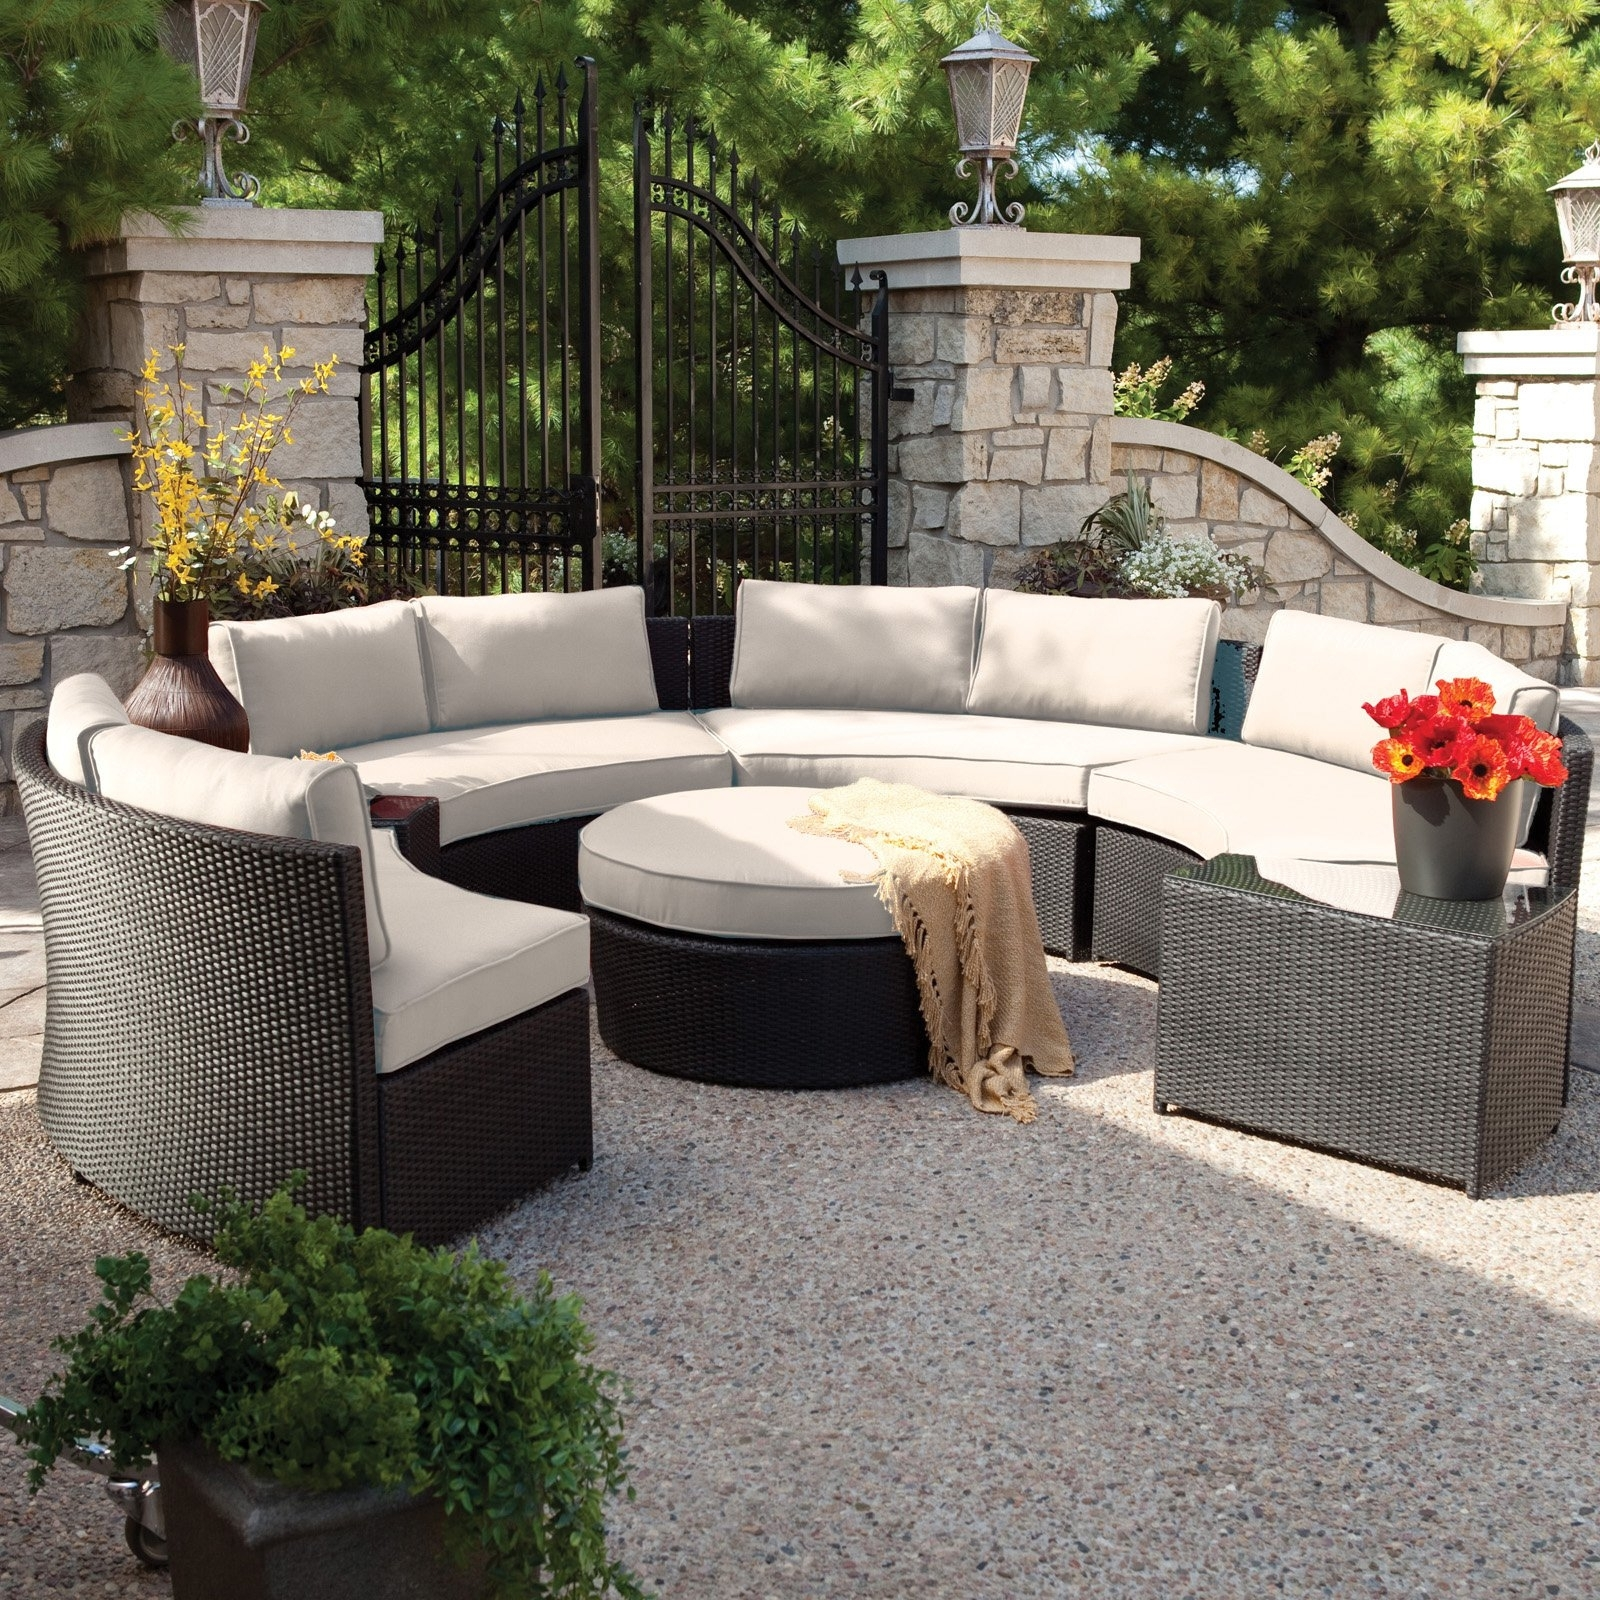 Most Popular Belham Living Meridian Round Outdoor Wicker Patio Furniture Set With For Round Patio Conversation Sets (View 4 of 15)